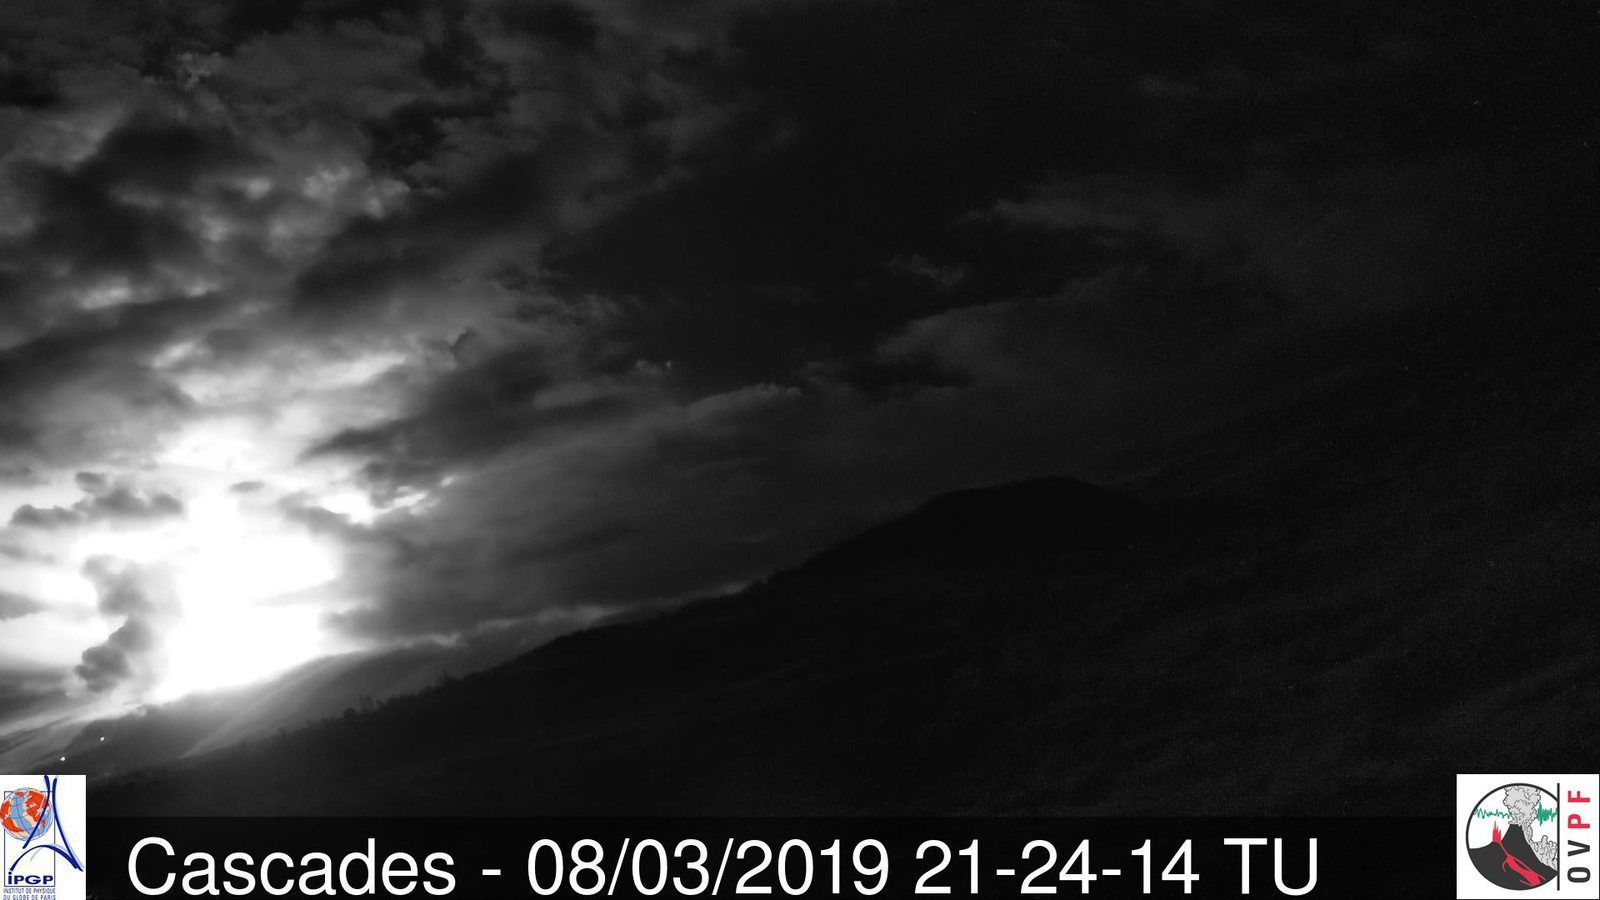 Piton de La Fournaise - the Cascades webcam is operational again - 08.03.2019 / 21h24 UT - OVPF